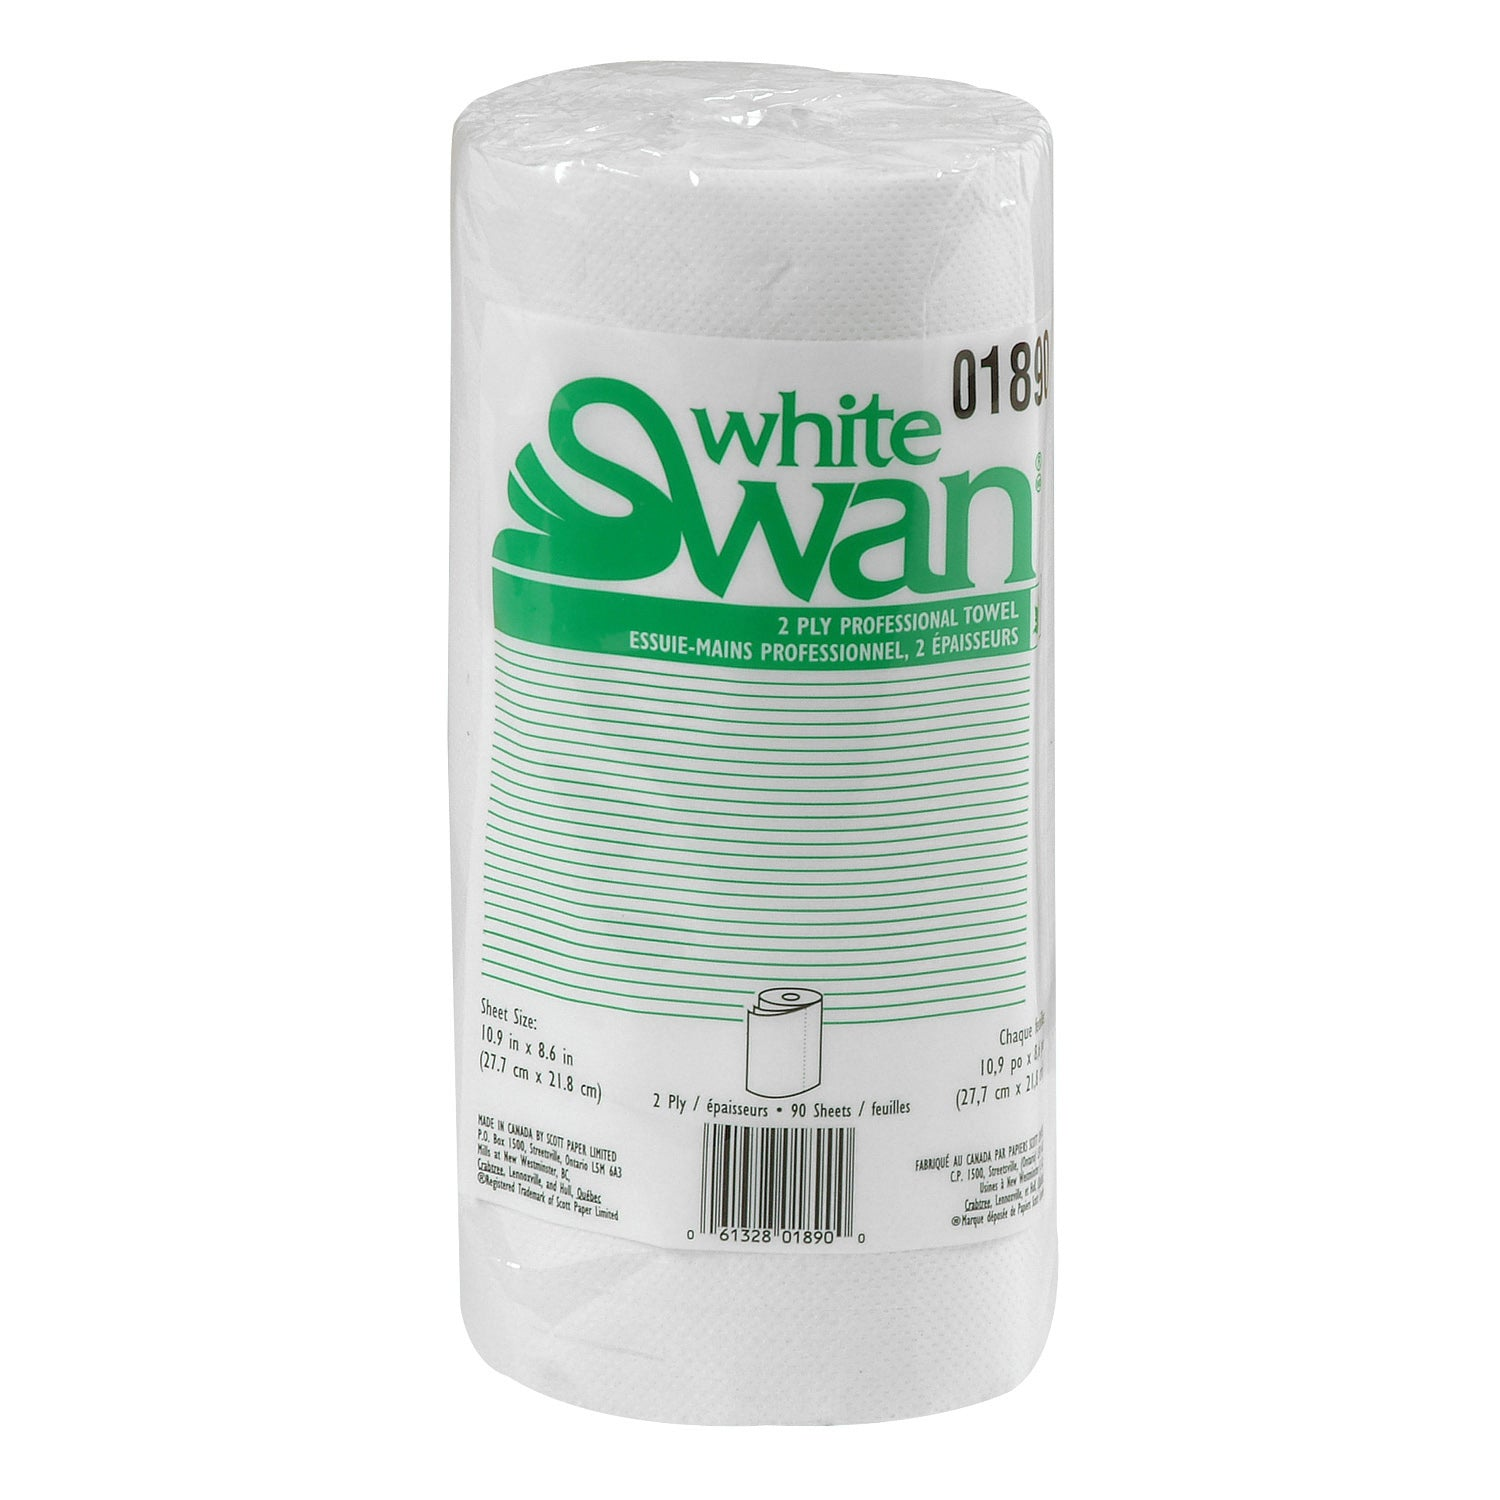 Scott's Paper Towel 11'' - 90 sheets/roll - 24 Pack [$1.33/roll]